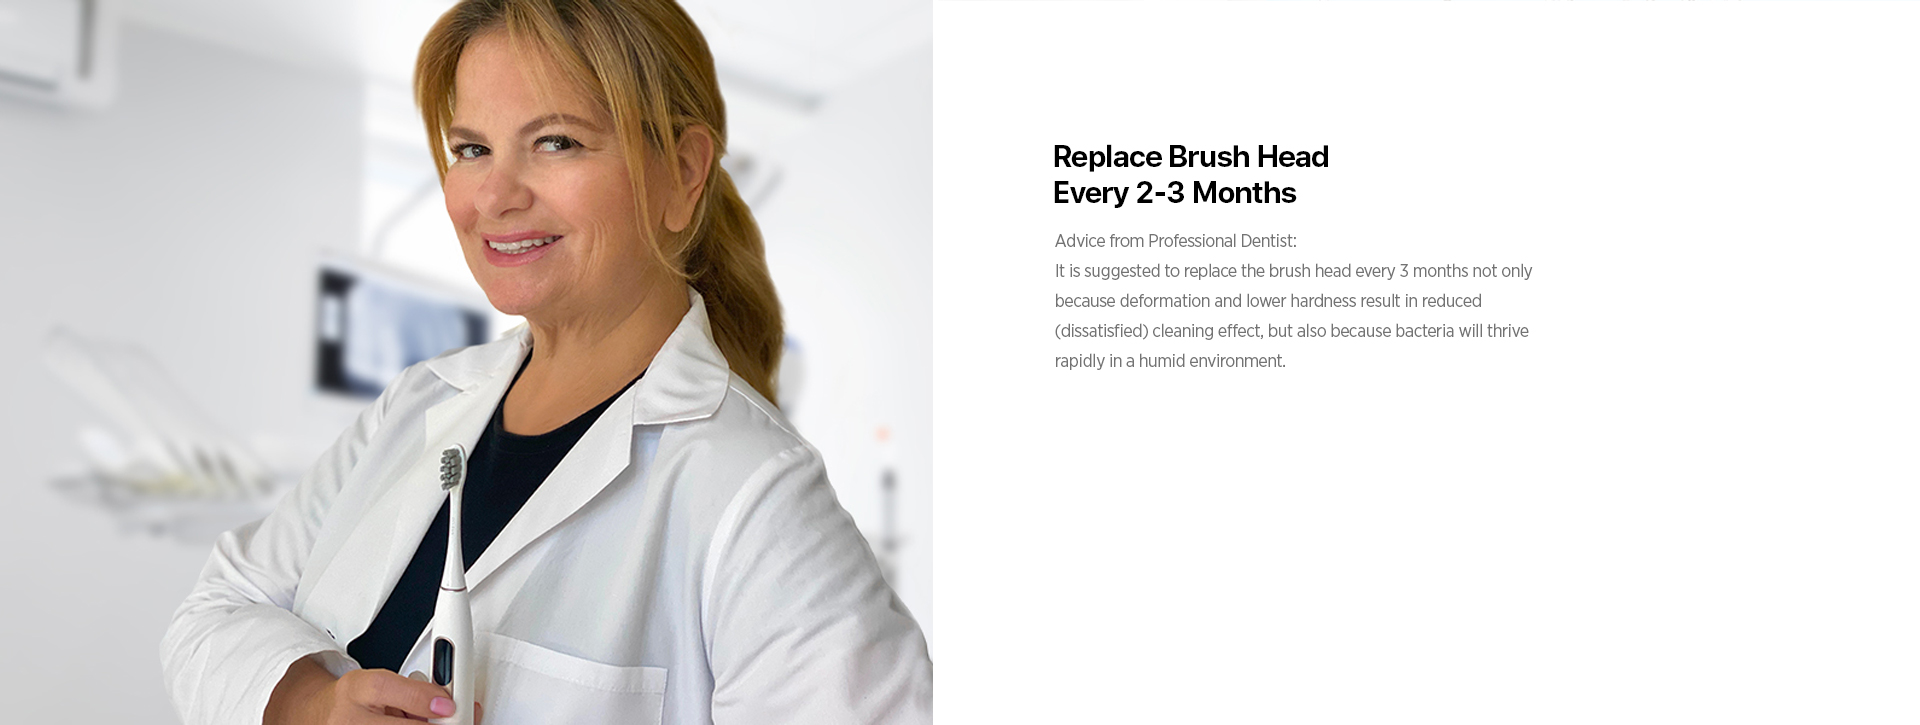 repalce brush head every 2-3 months